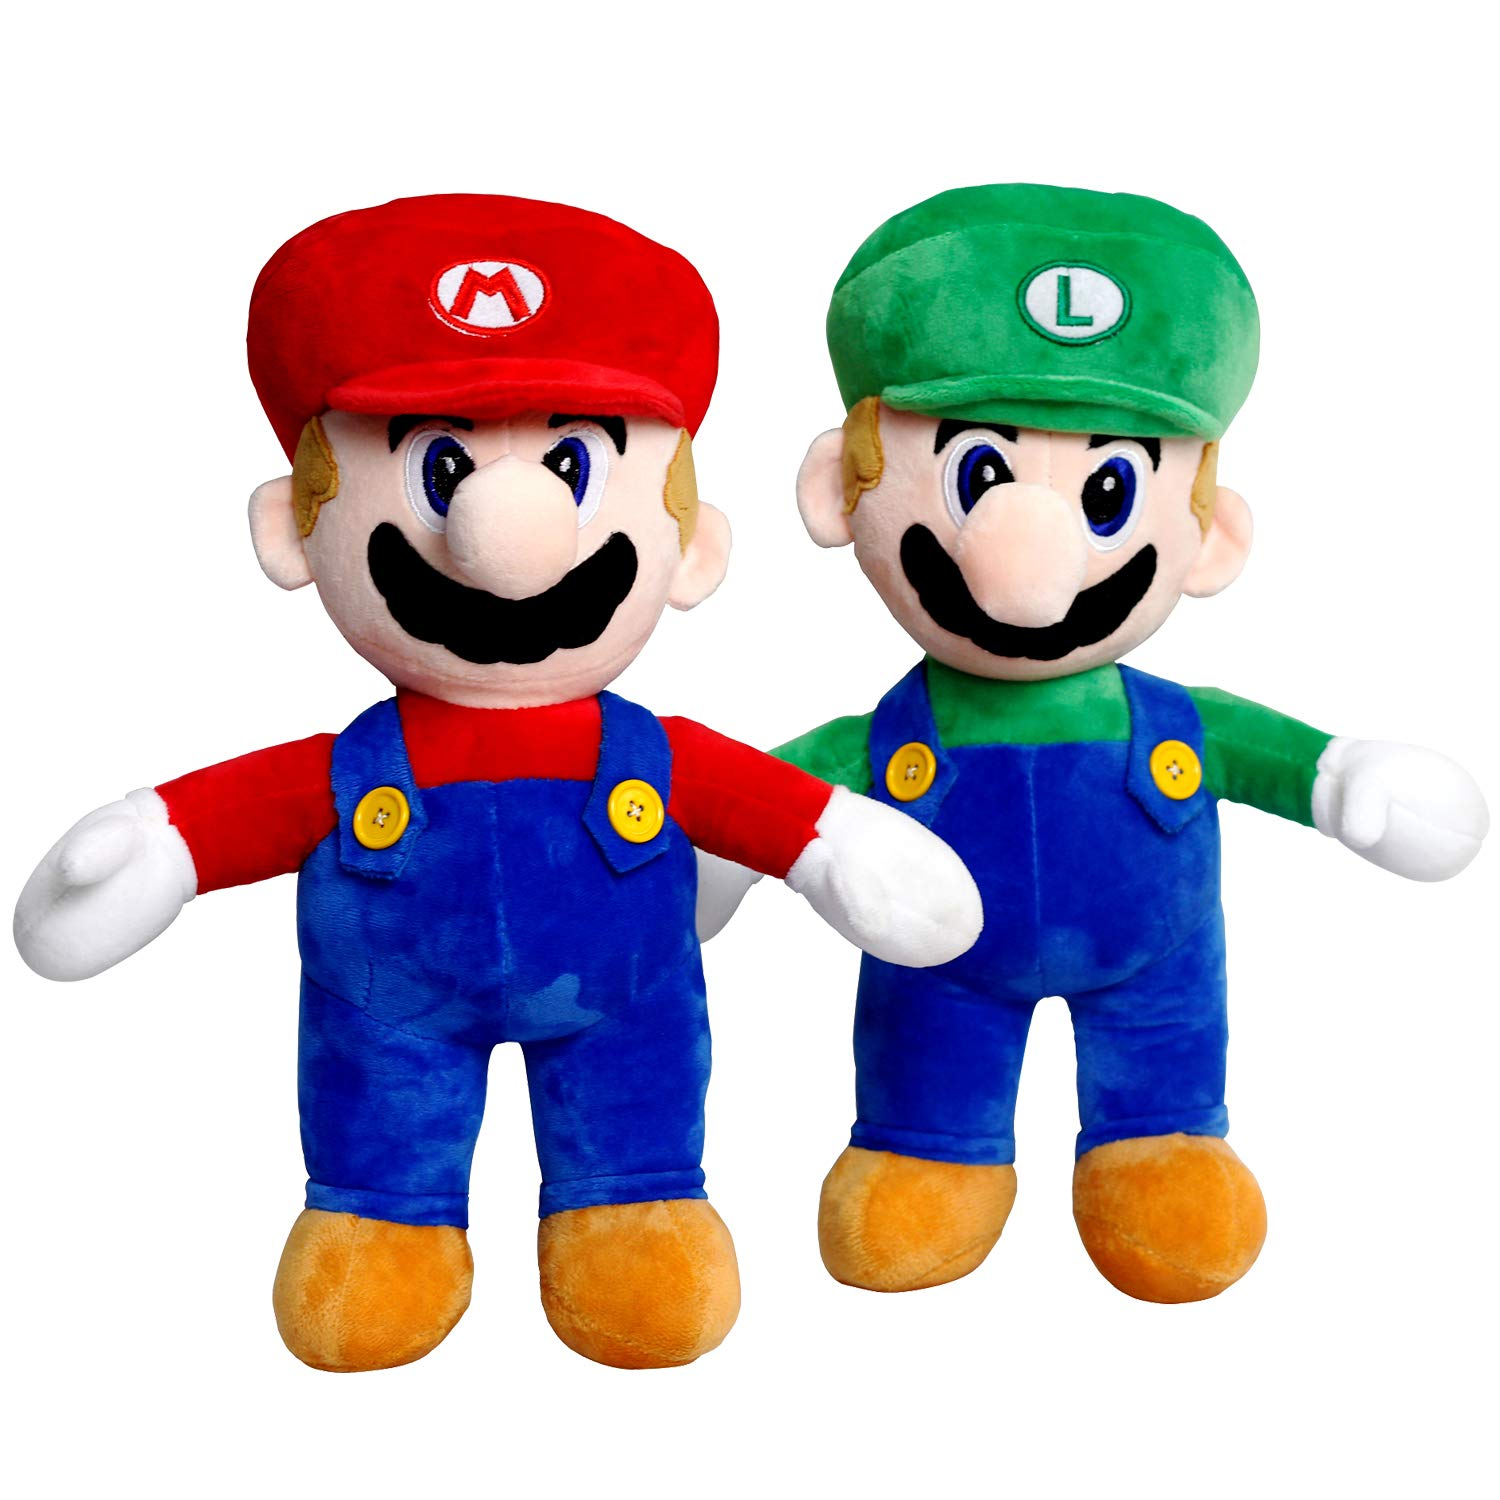 GOOSEN78 Super Mario Plush, Mario and Luiqi Plush Toys, Soft Stuffed Plush Toys,Set -14in by GOOSEN